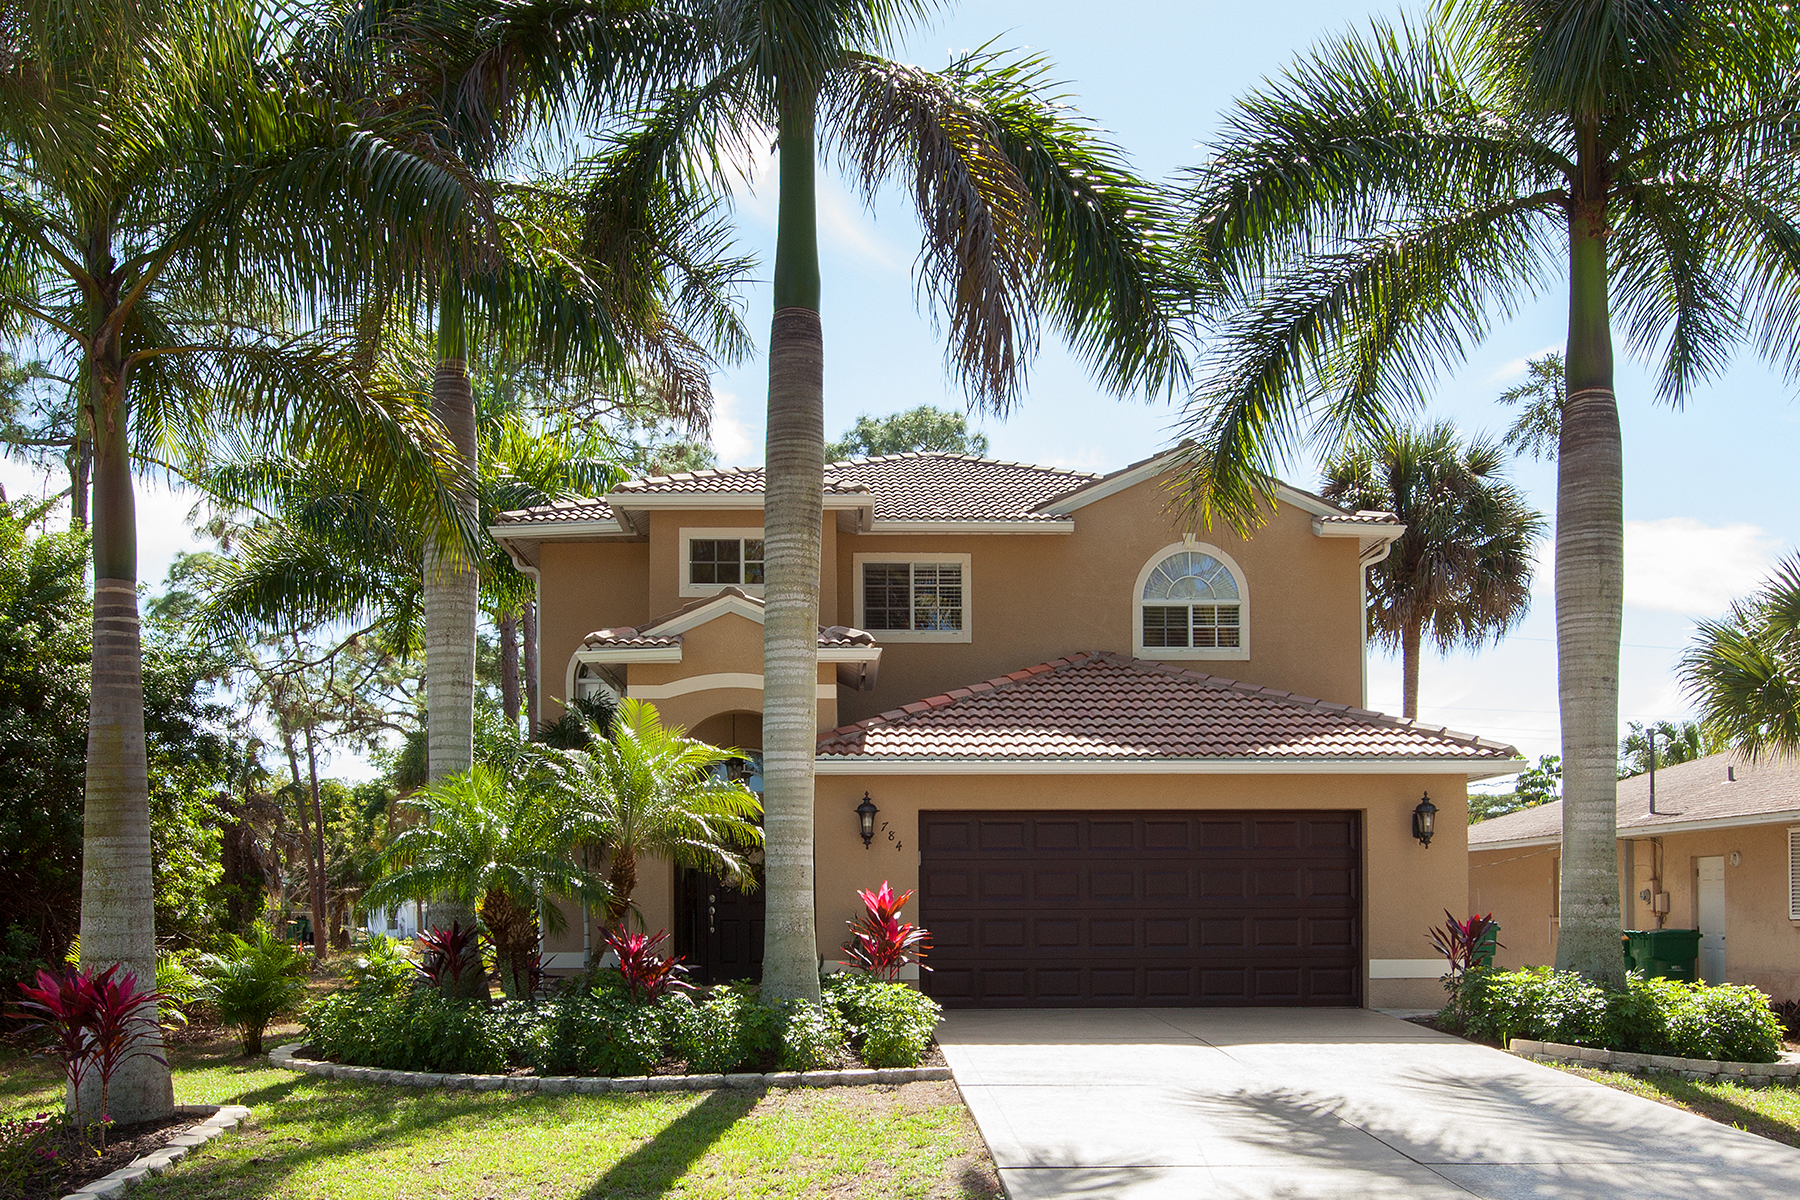 Single Family Home for Sale at Naples 784 110th Ave N Naples, Florida, 34108 United States